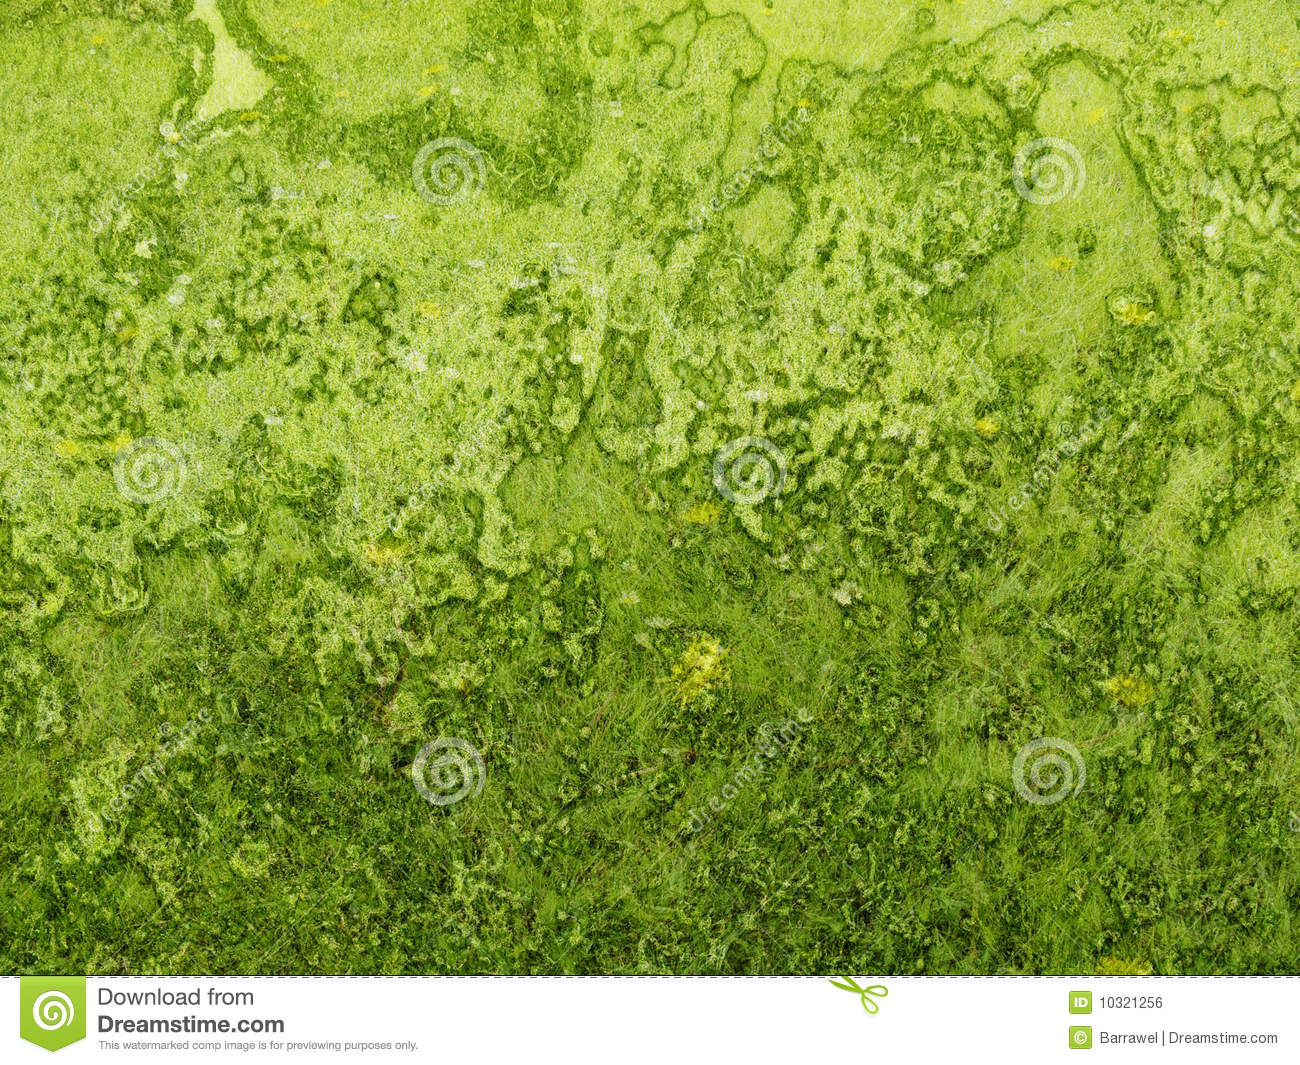 Rough Texture Background: Background Green Texture Rough Grass Royalty Free Stock